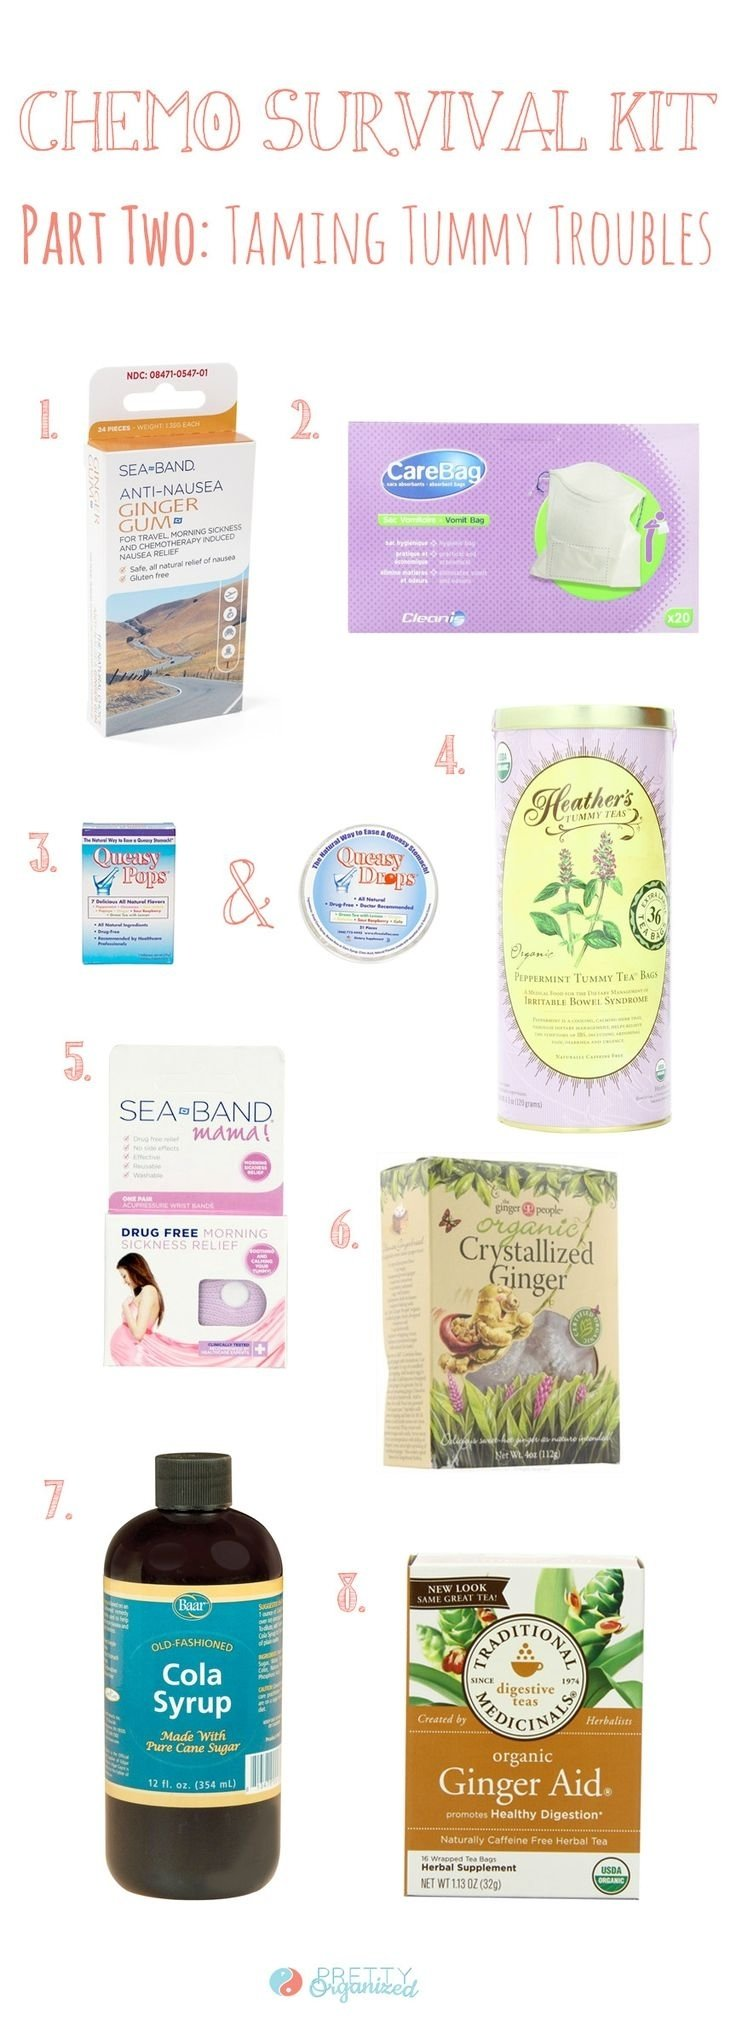 10 Famous Gift Ideas For Breast Cancer Patients 73 best cancer care kit ideas images on pinterest gift basket 2 2020